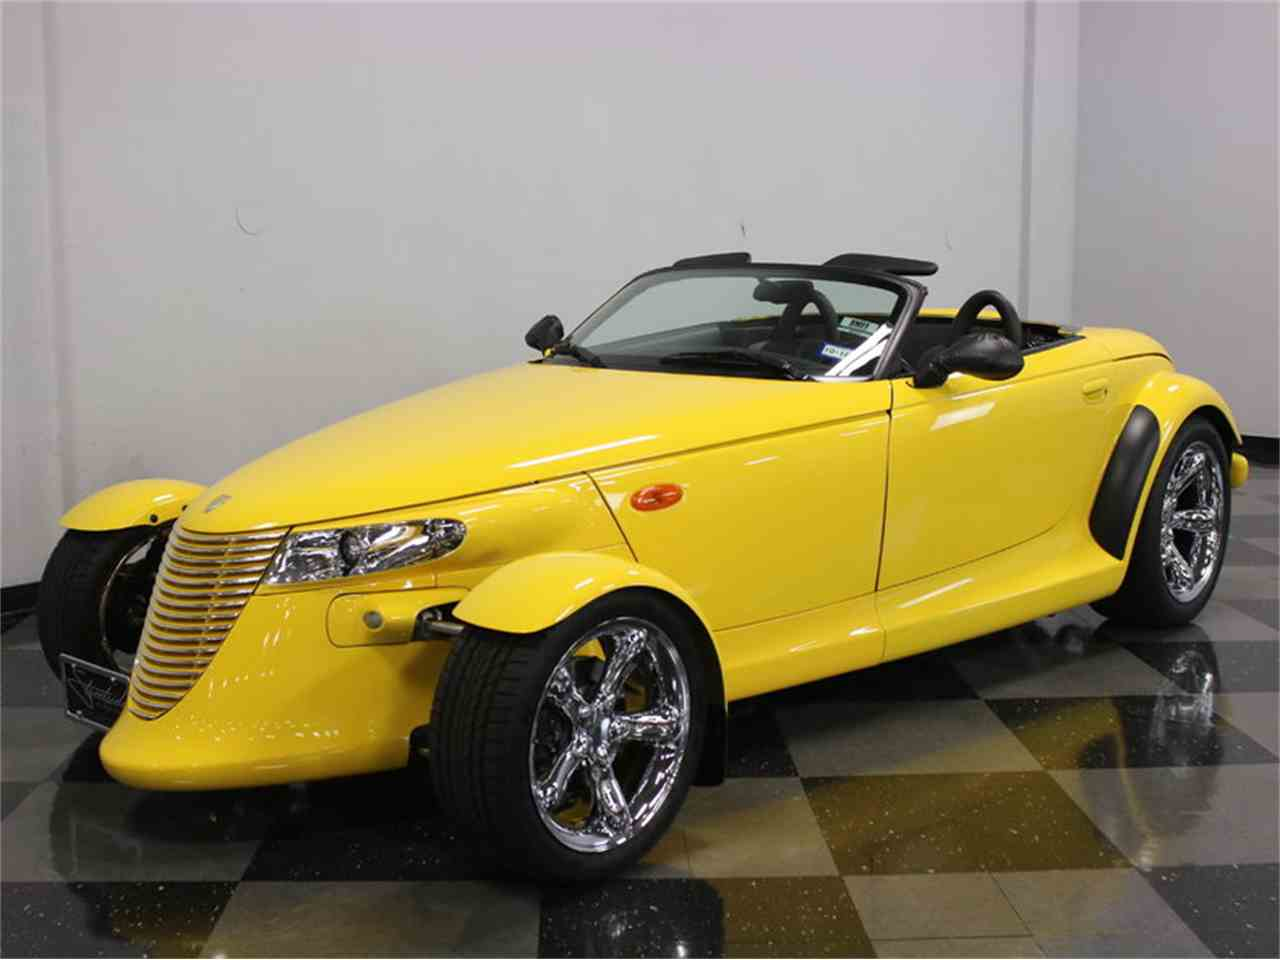 Large Picture of '99 Plymouth Prowler - $37,995.00 Offered by Streetside Classics - Dallas / Fort Worth - J56O